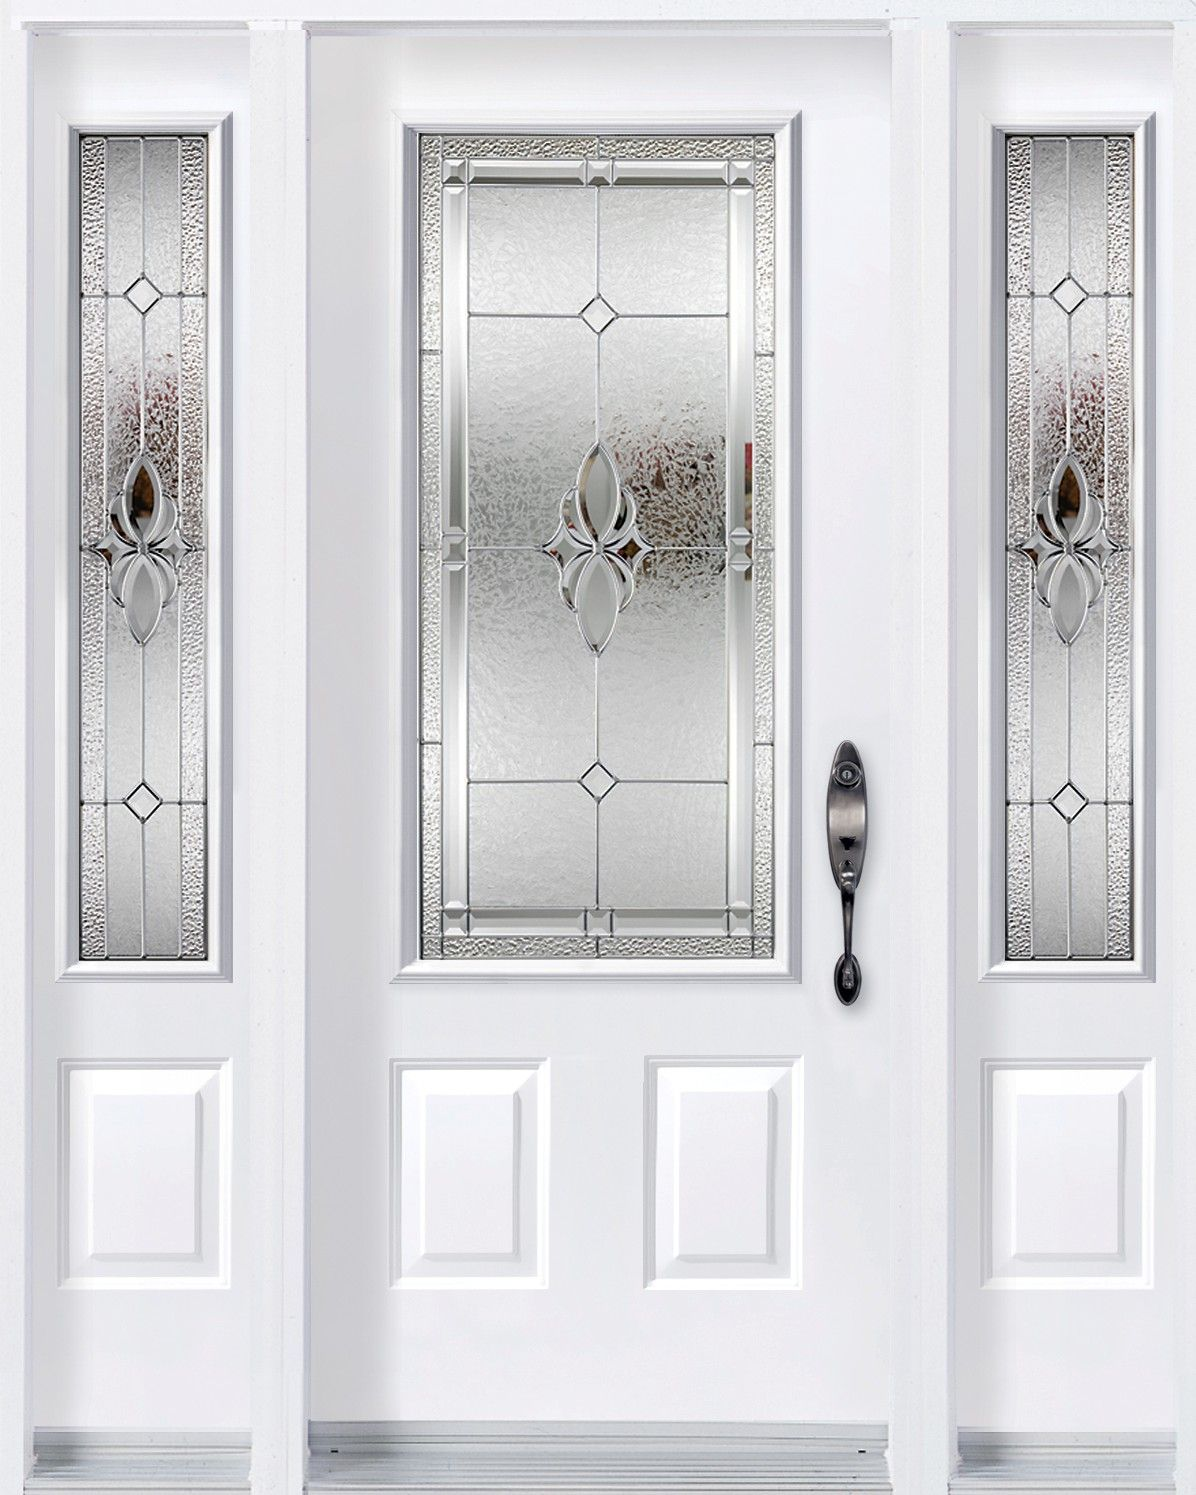 ... Glass Size 8x48 Sidelite | 22x48 Door - Steel Doors (Elegance Series) | Kohltech Windows and Entrance Systems Canada - Available at Centennial Glass ...  sc 1 st  Pinterest : centennial doors - pezcame.com